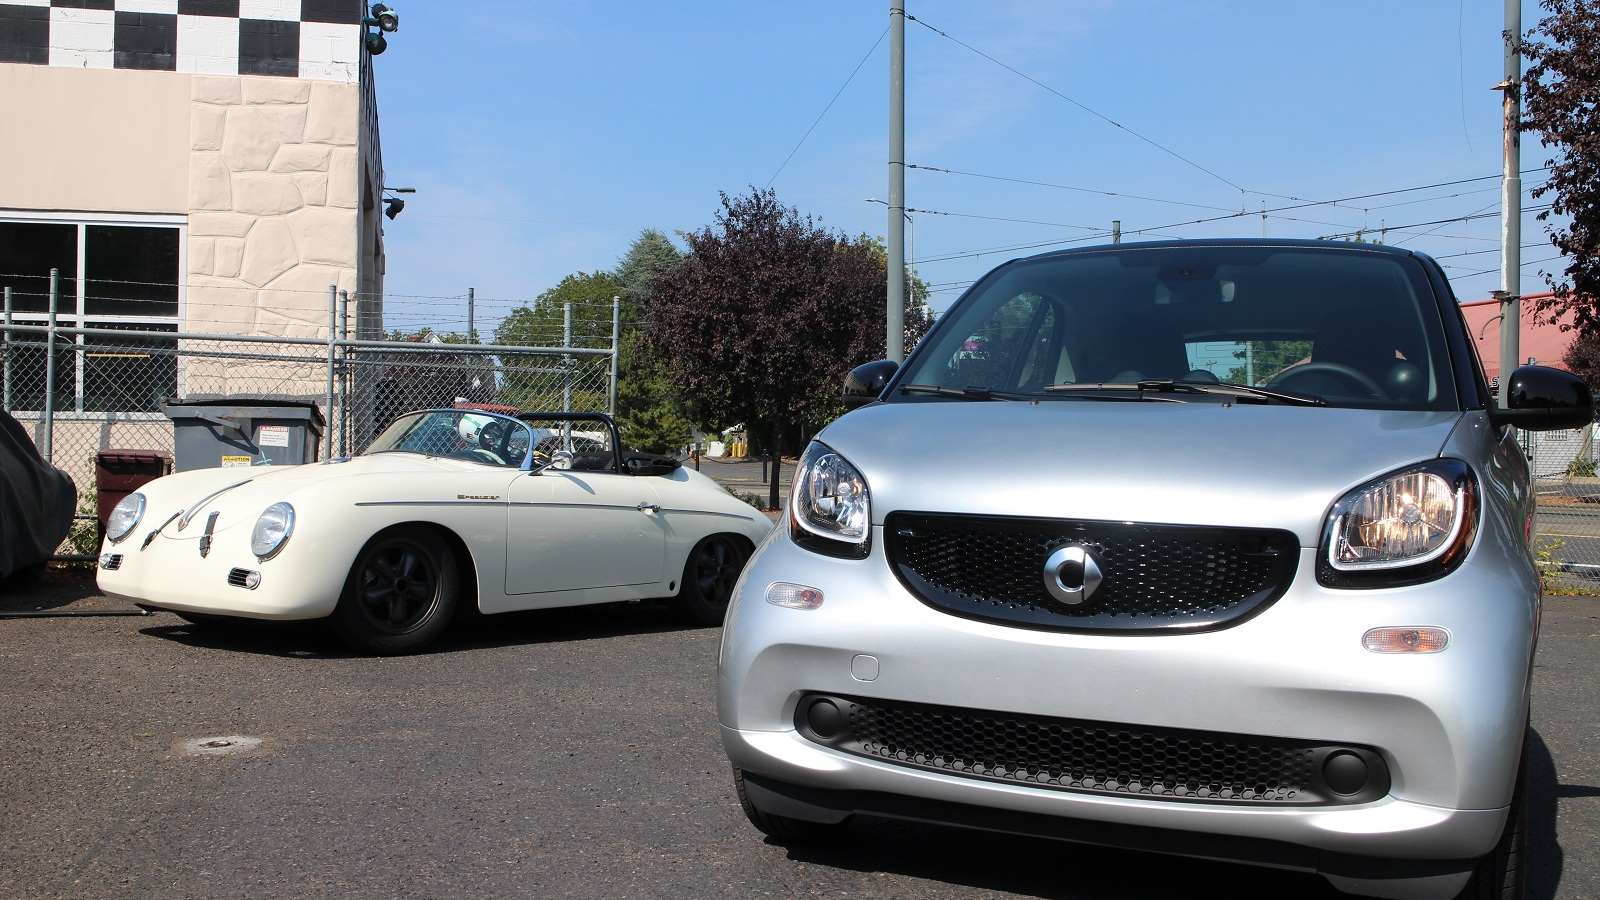 2016 Smart ForTwo minicar, parked next to another rear-engined car, Oregon, Aug 2015